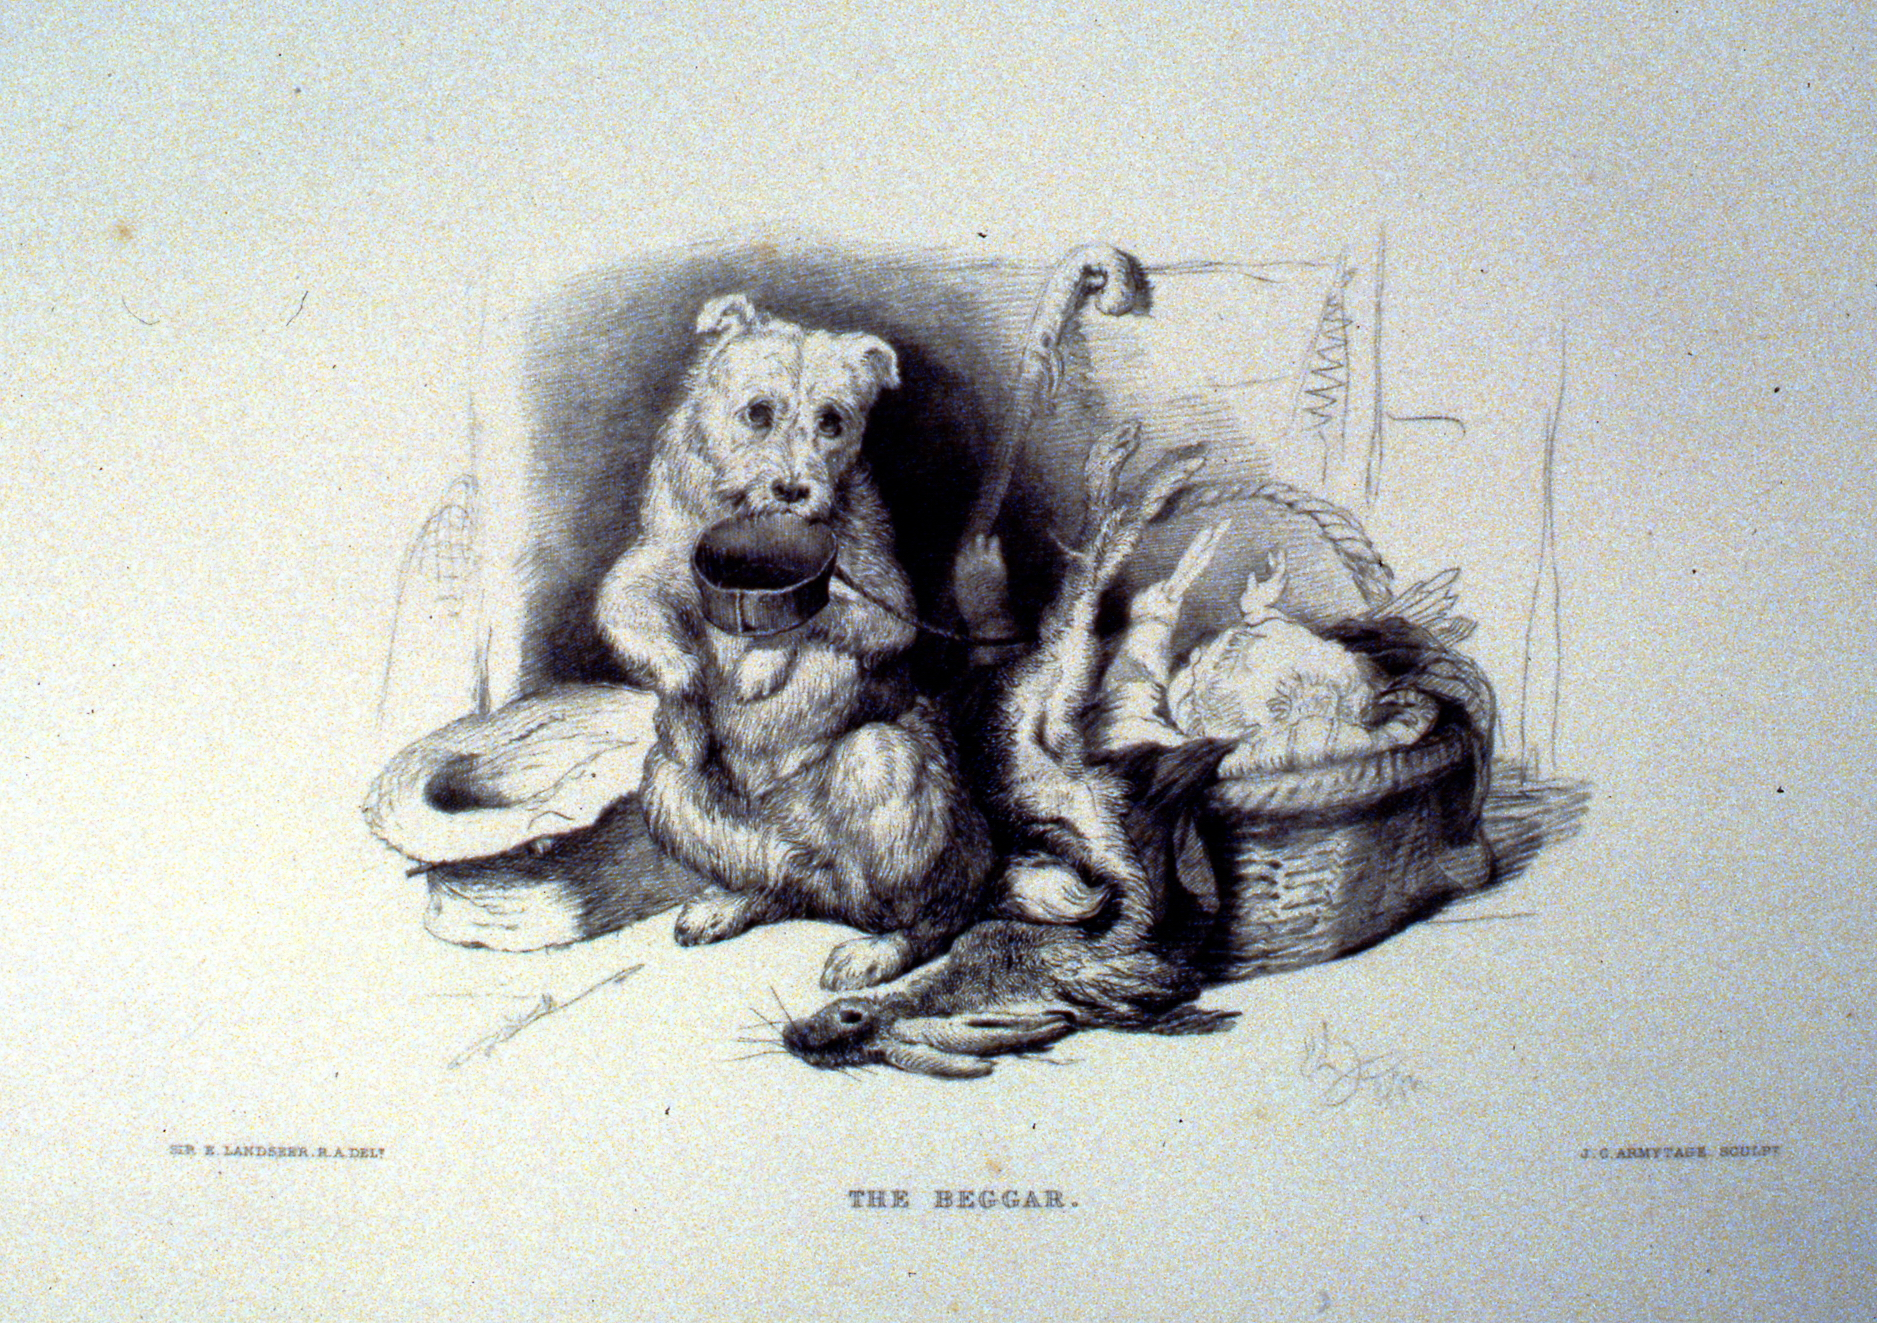 The Beggar , c. late 19th Century, J.C. Armytage, steel engraving, approx. 16 cm x 26 cm, 1996.08.29, gift of Yvonne Adams